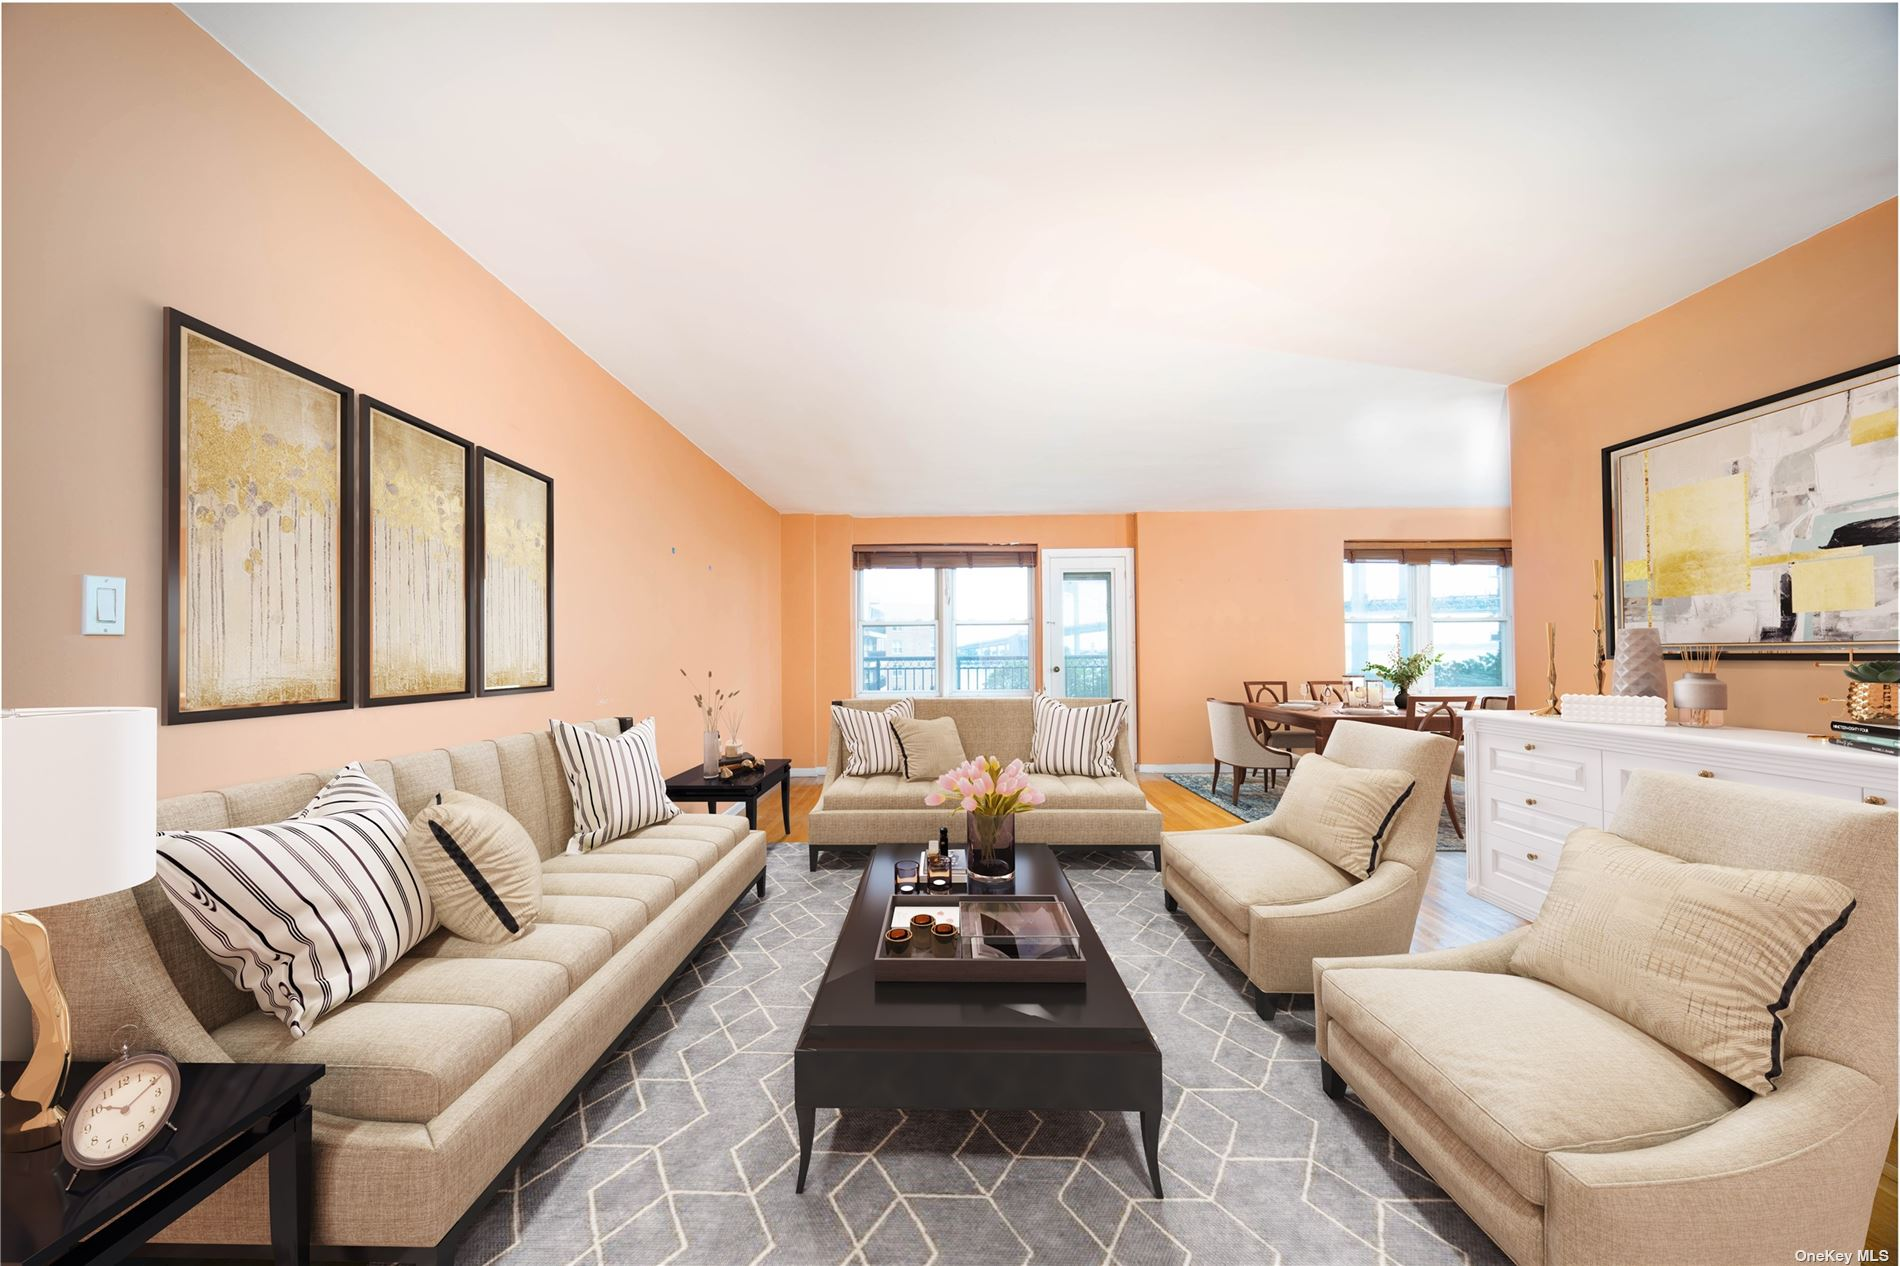 This rare 3 BR 2 bath corner unit has water and bridge views with huge closets, & plenty of storage space. This unit has a spacious kitchen, dining and living space, perfect for entertaining!!  Cryder Point amenities include doorman, package Room, outdoor pool, waterfront promenade and fishing dock, two community rooms, playground and more. Walking distance to local bus (Q15) to Flushing and express bus (Qm2) To Manhattan. 10 Min drive to LIRR, Bayside. Dogs/cats allowed, restrictions apply.